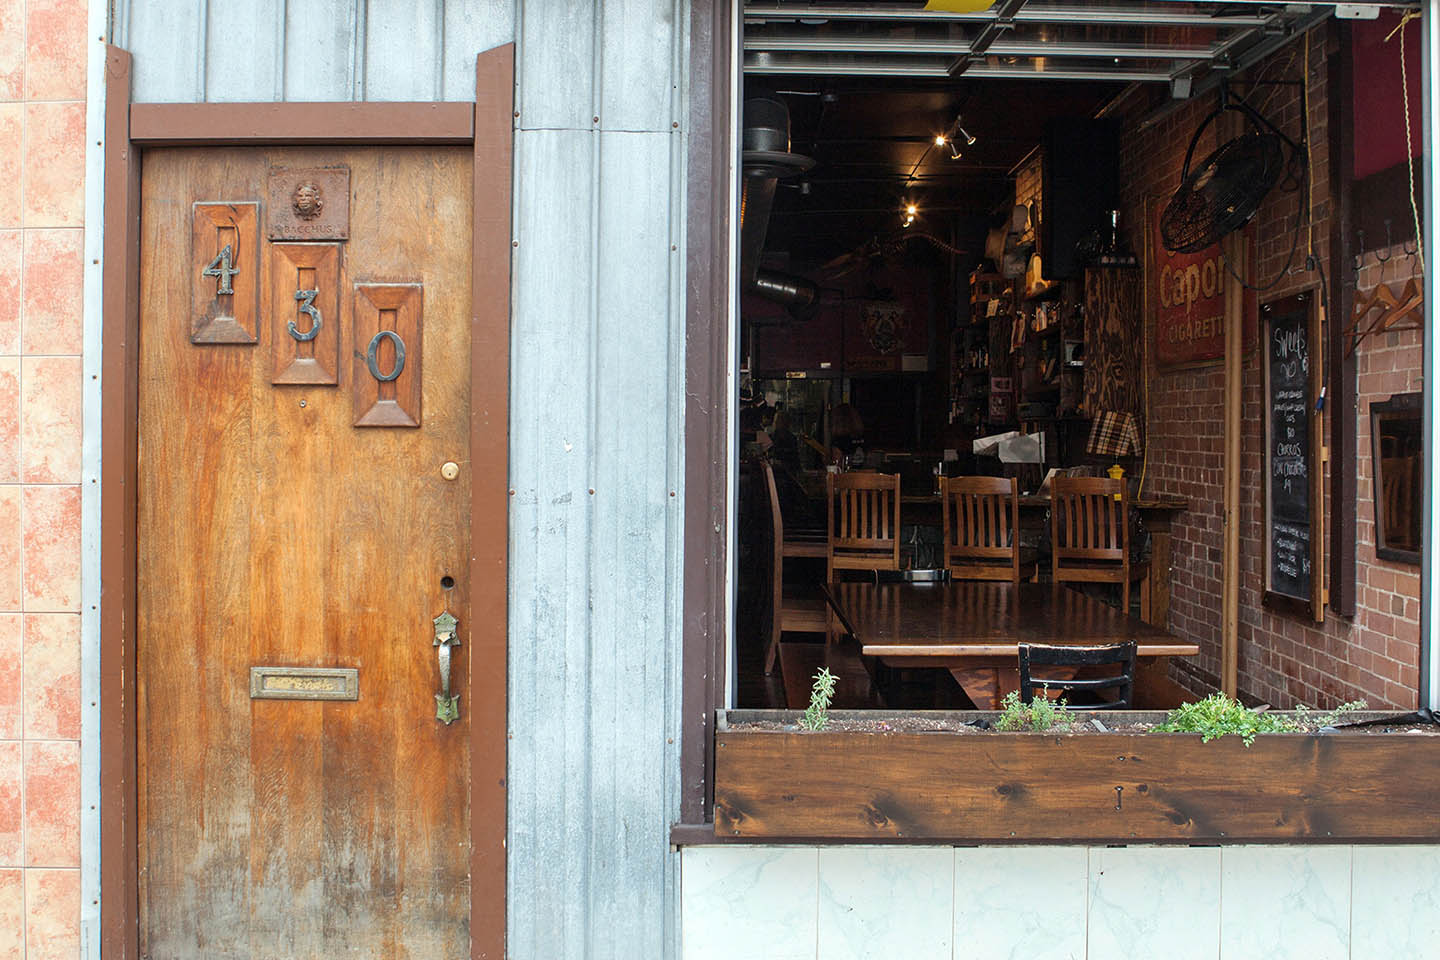 The Whalesbone Oyster House Bytown Bites